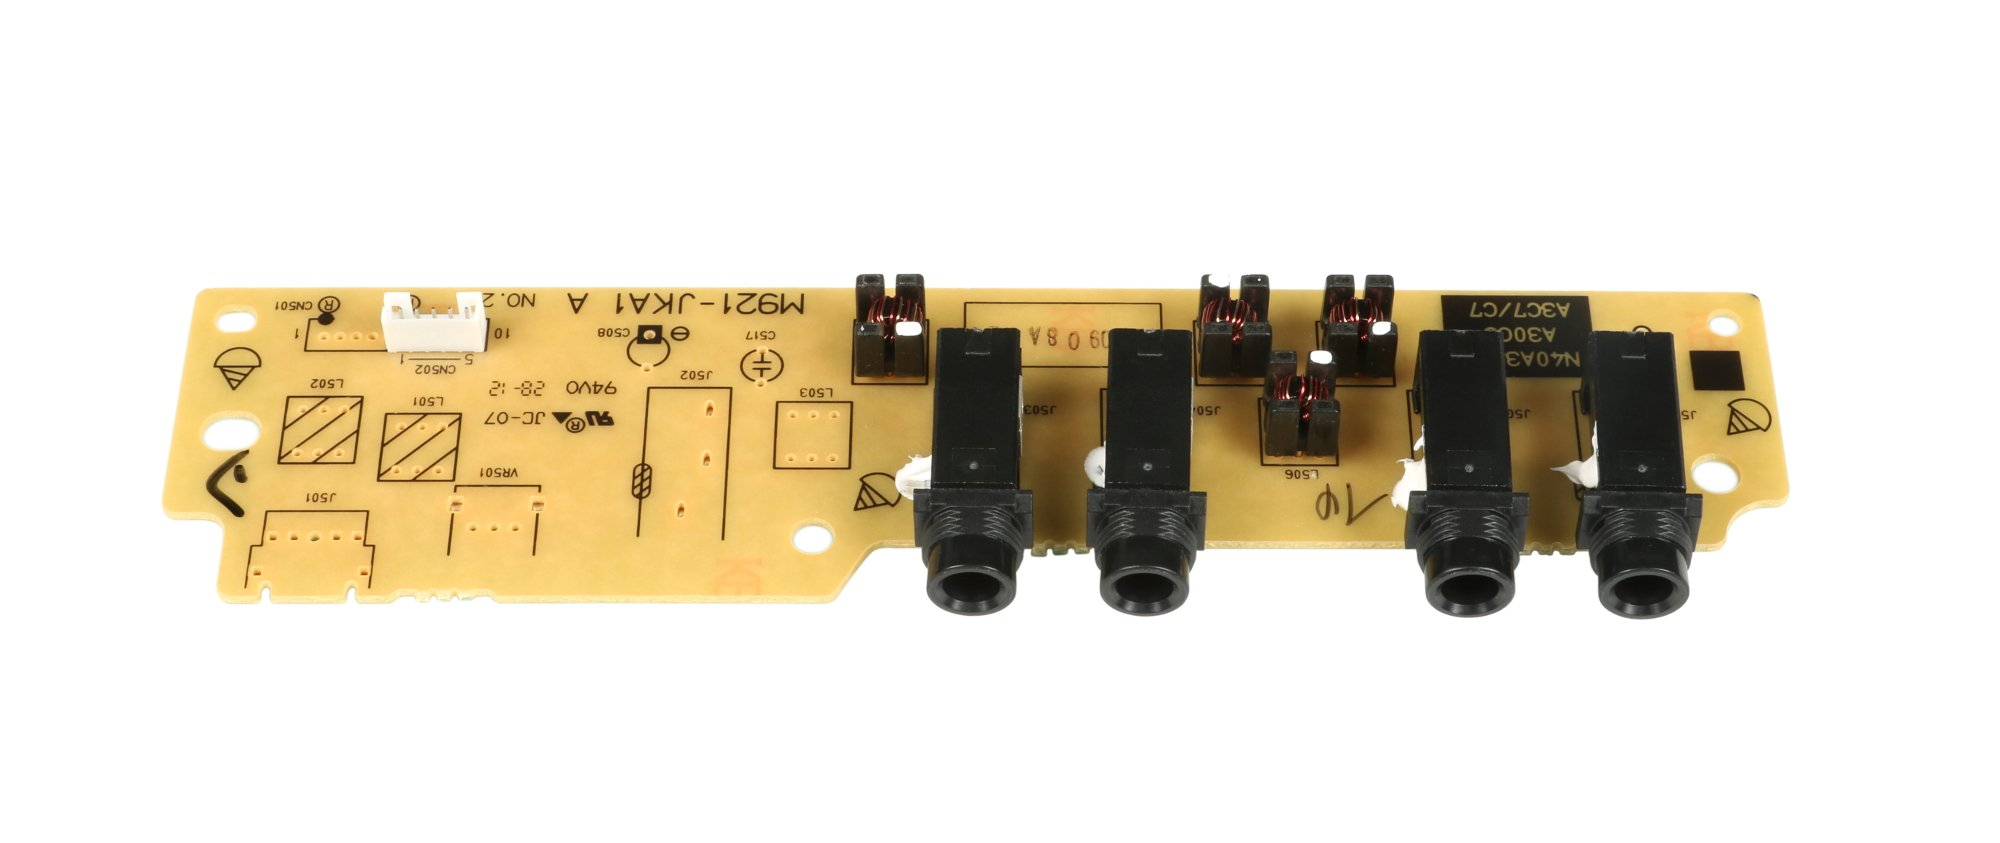 Jack PCB for PX-350M